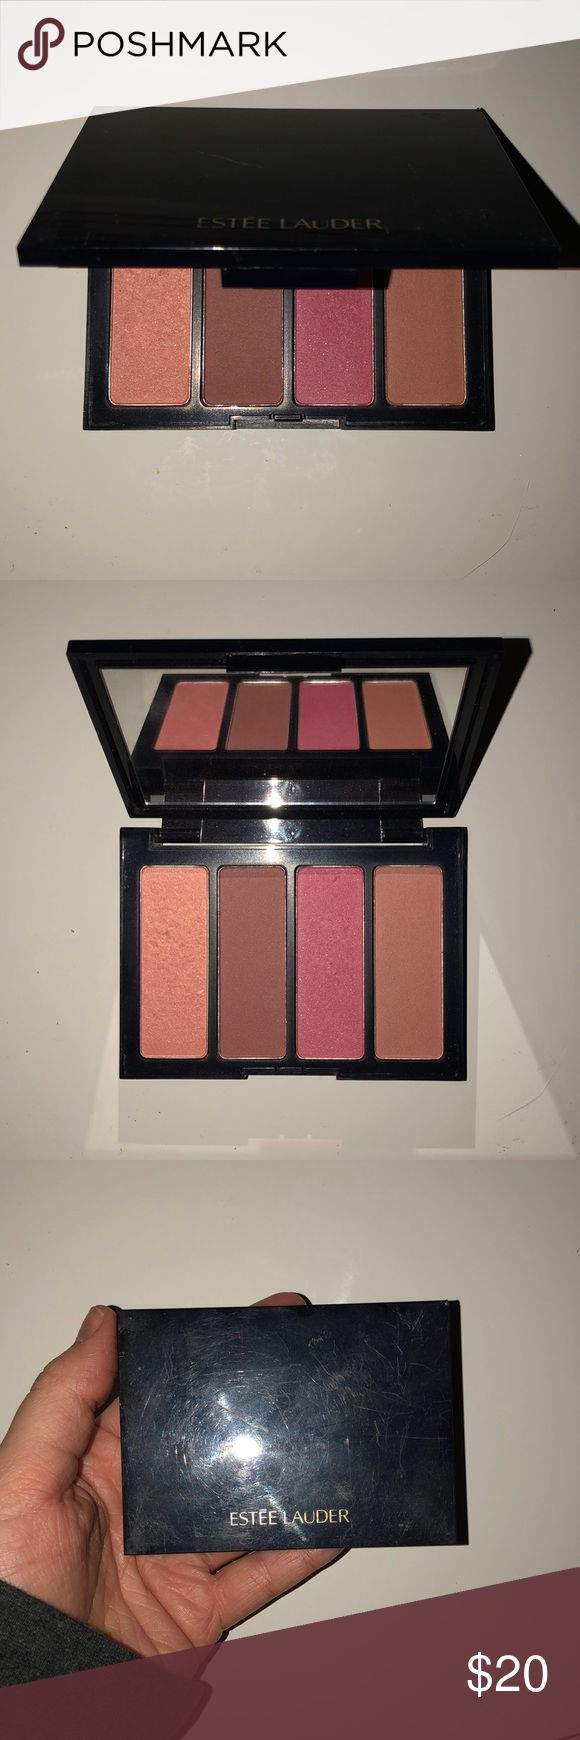 Estée Lauder blush, eyeshadow, and lipstick bundle Barely used Estée Lauder palettes. One blush and two eyeshadow. Scratches are from being in a make up bag,  but these have only been tested. Lipstick has never been touched. Open to offers! Estee Lauder Makeup